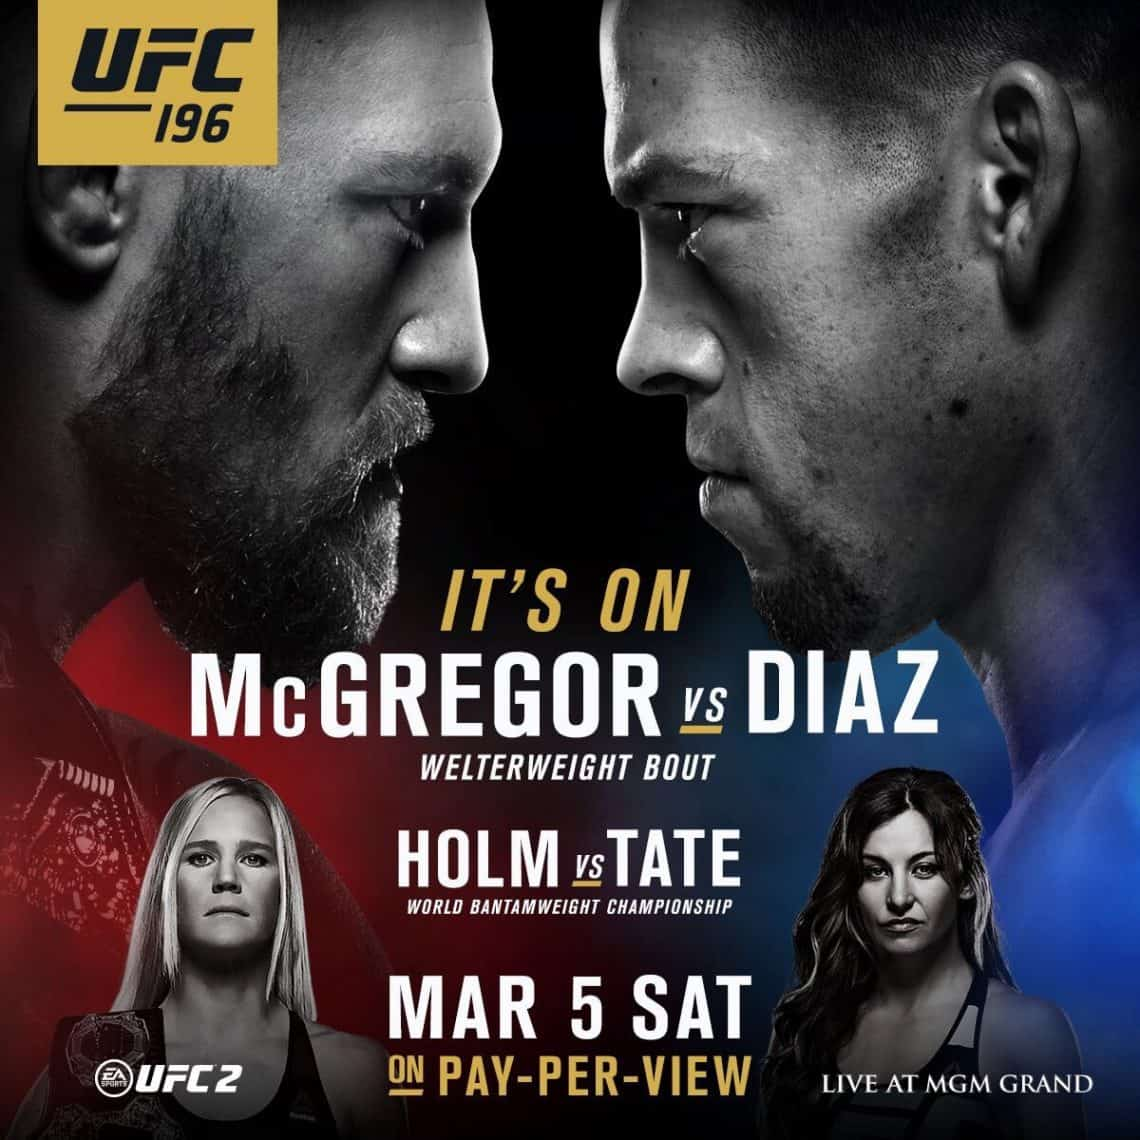 UFC 196: McGregor vs. Diaz 1